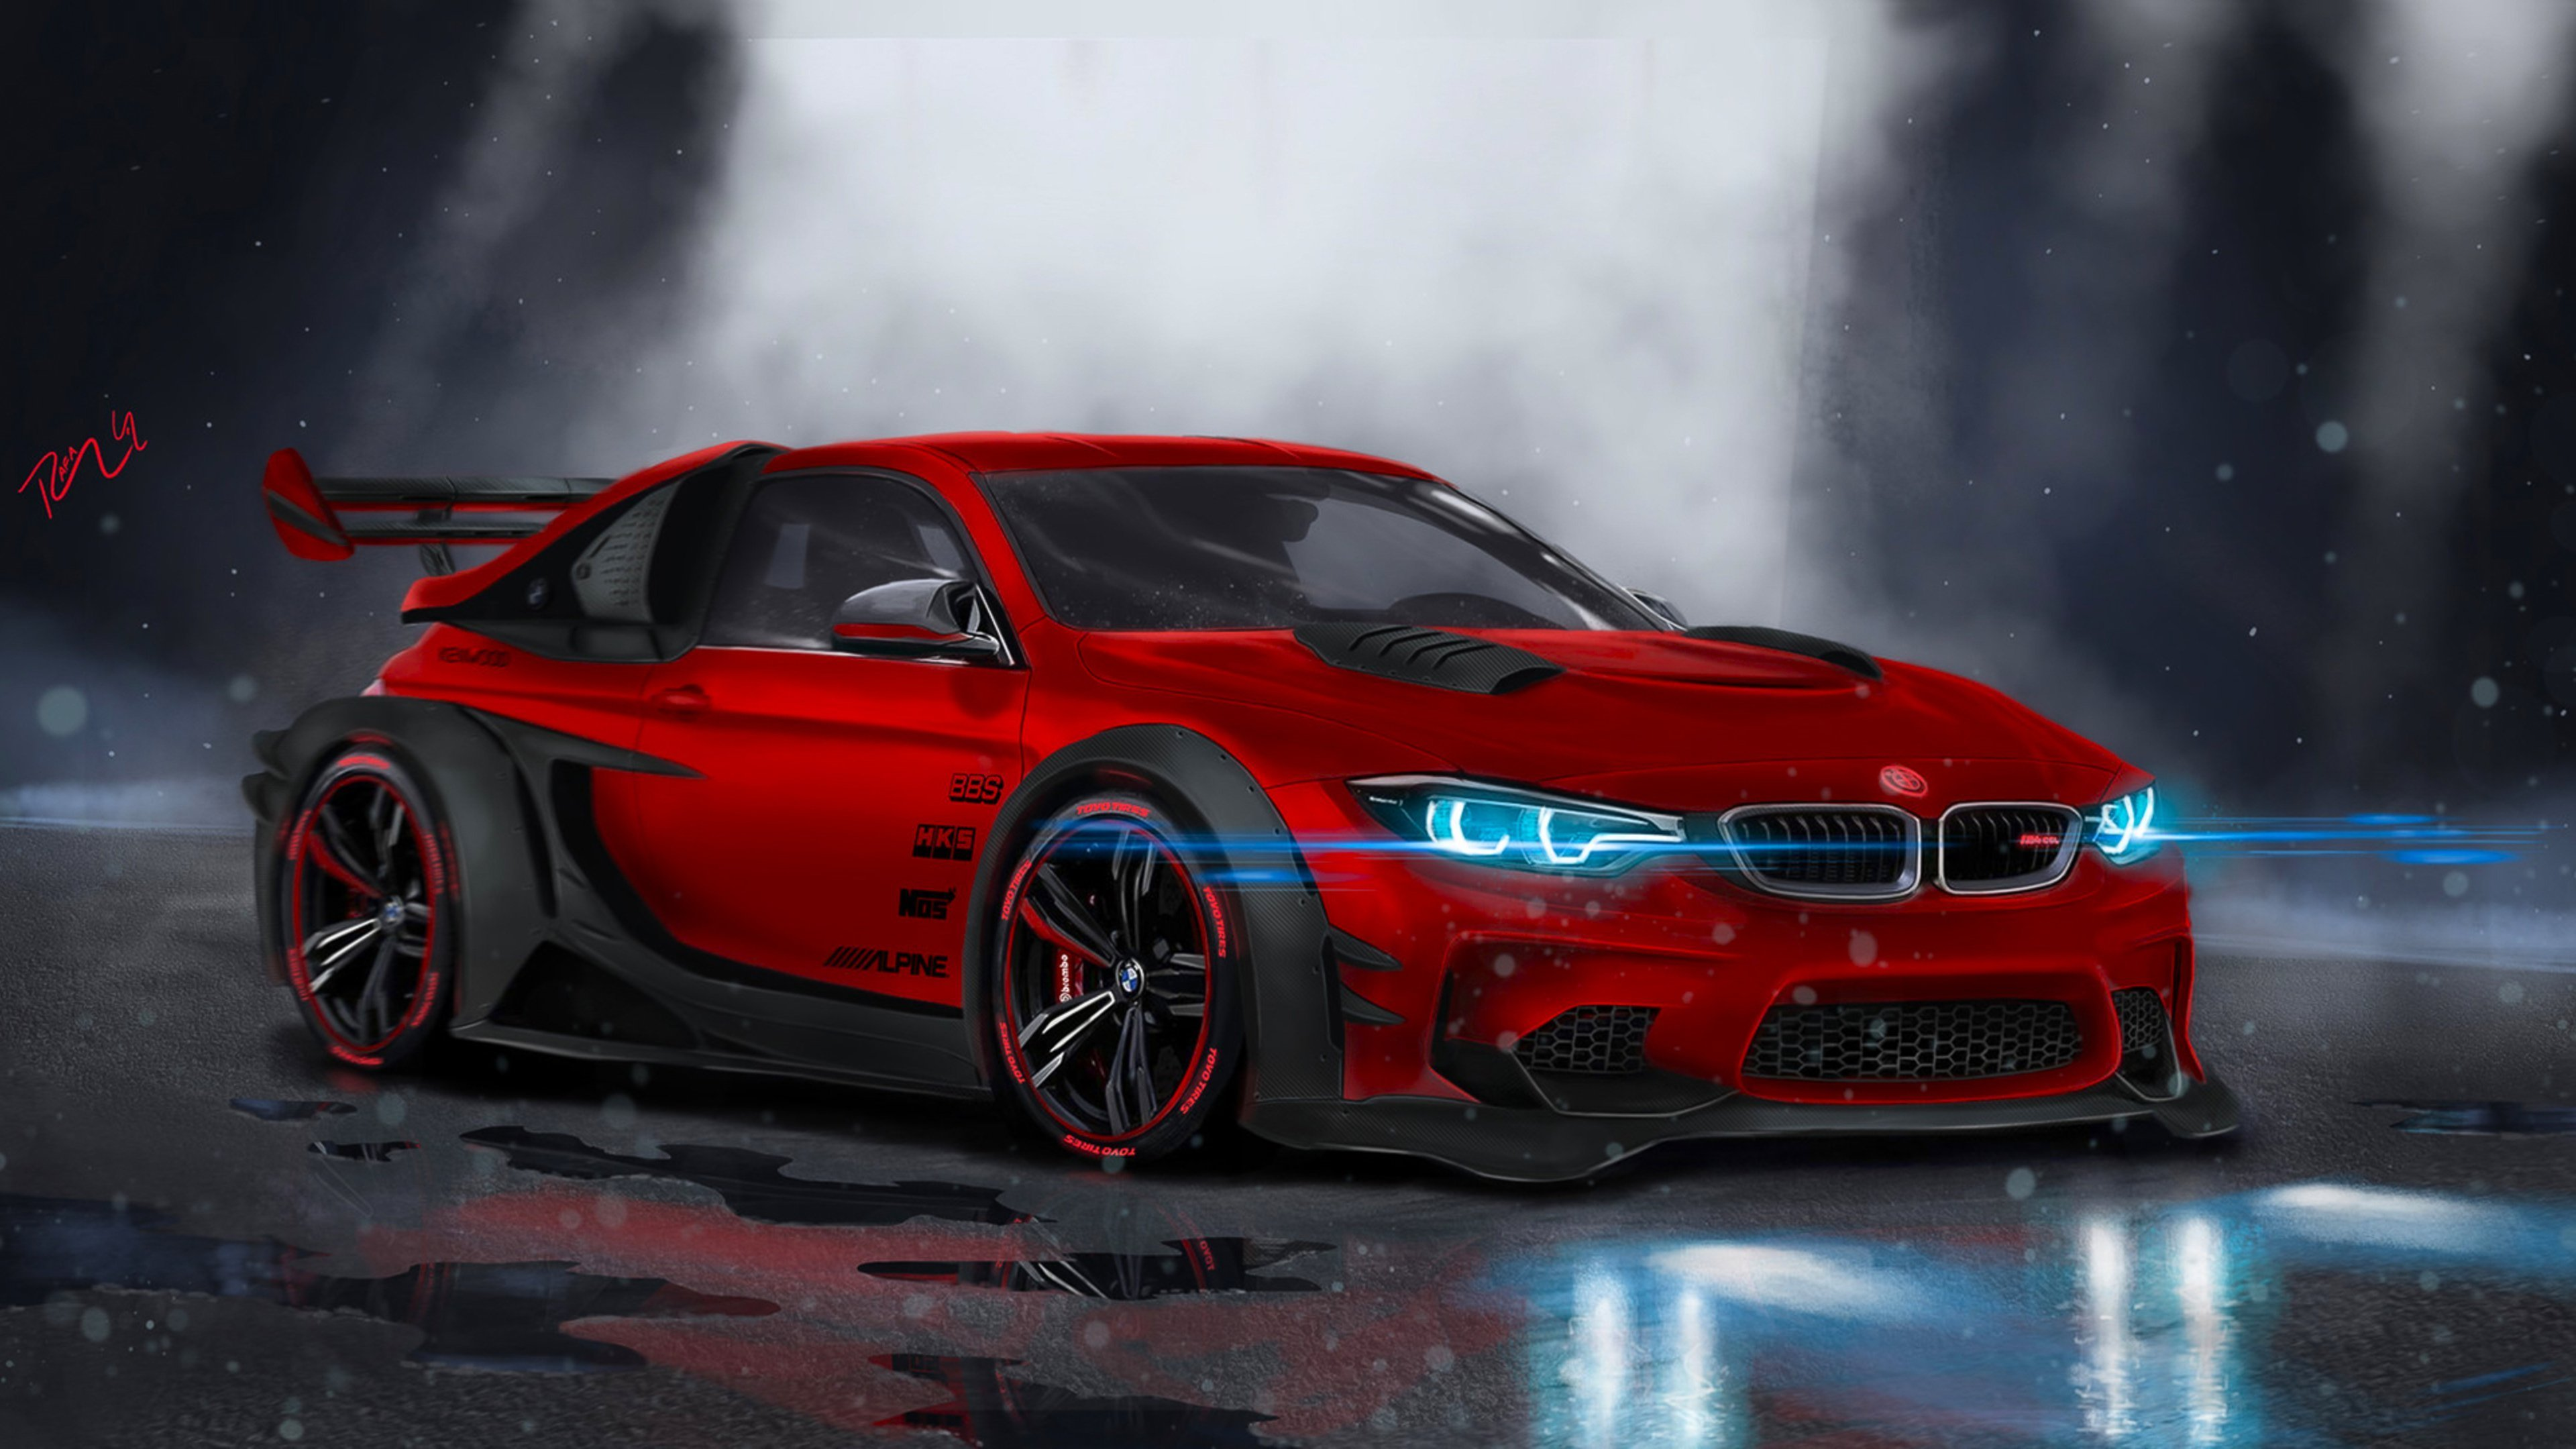 Latest Bmw M4 Highly Modified Hd Cars 4K Wallpapers Images Free Download